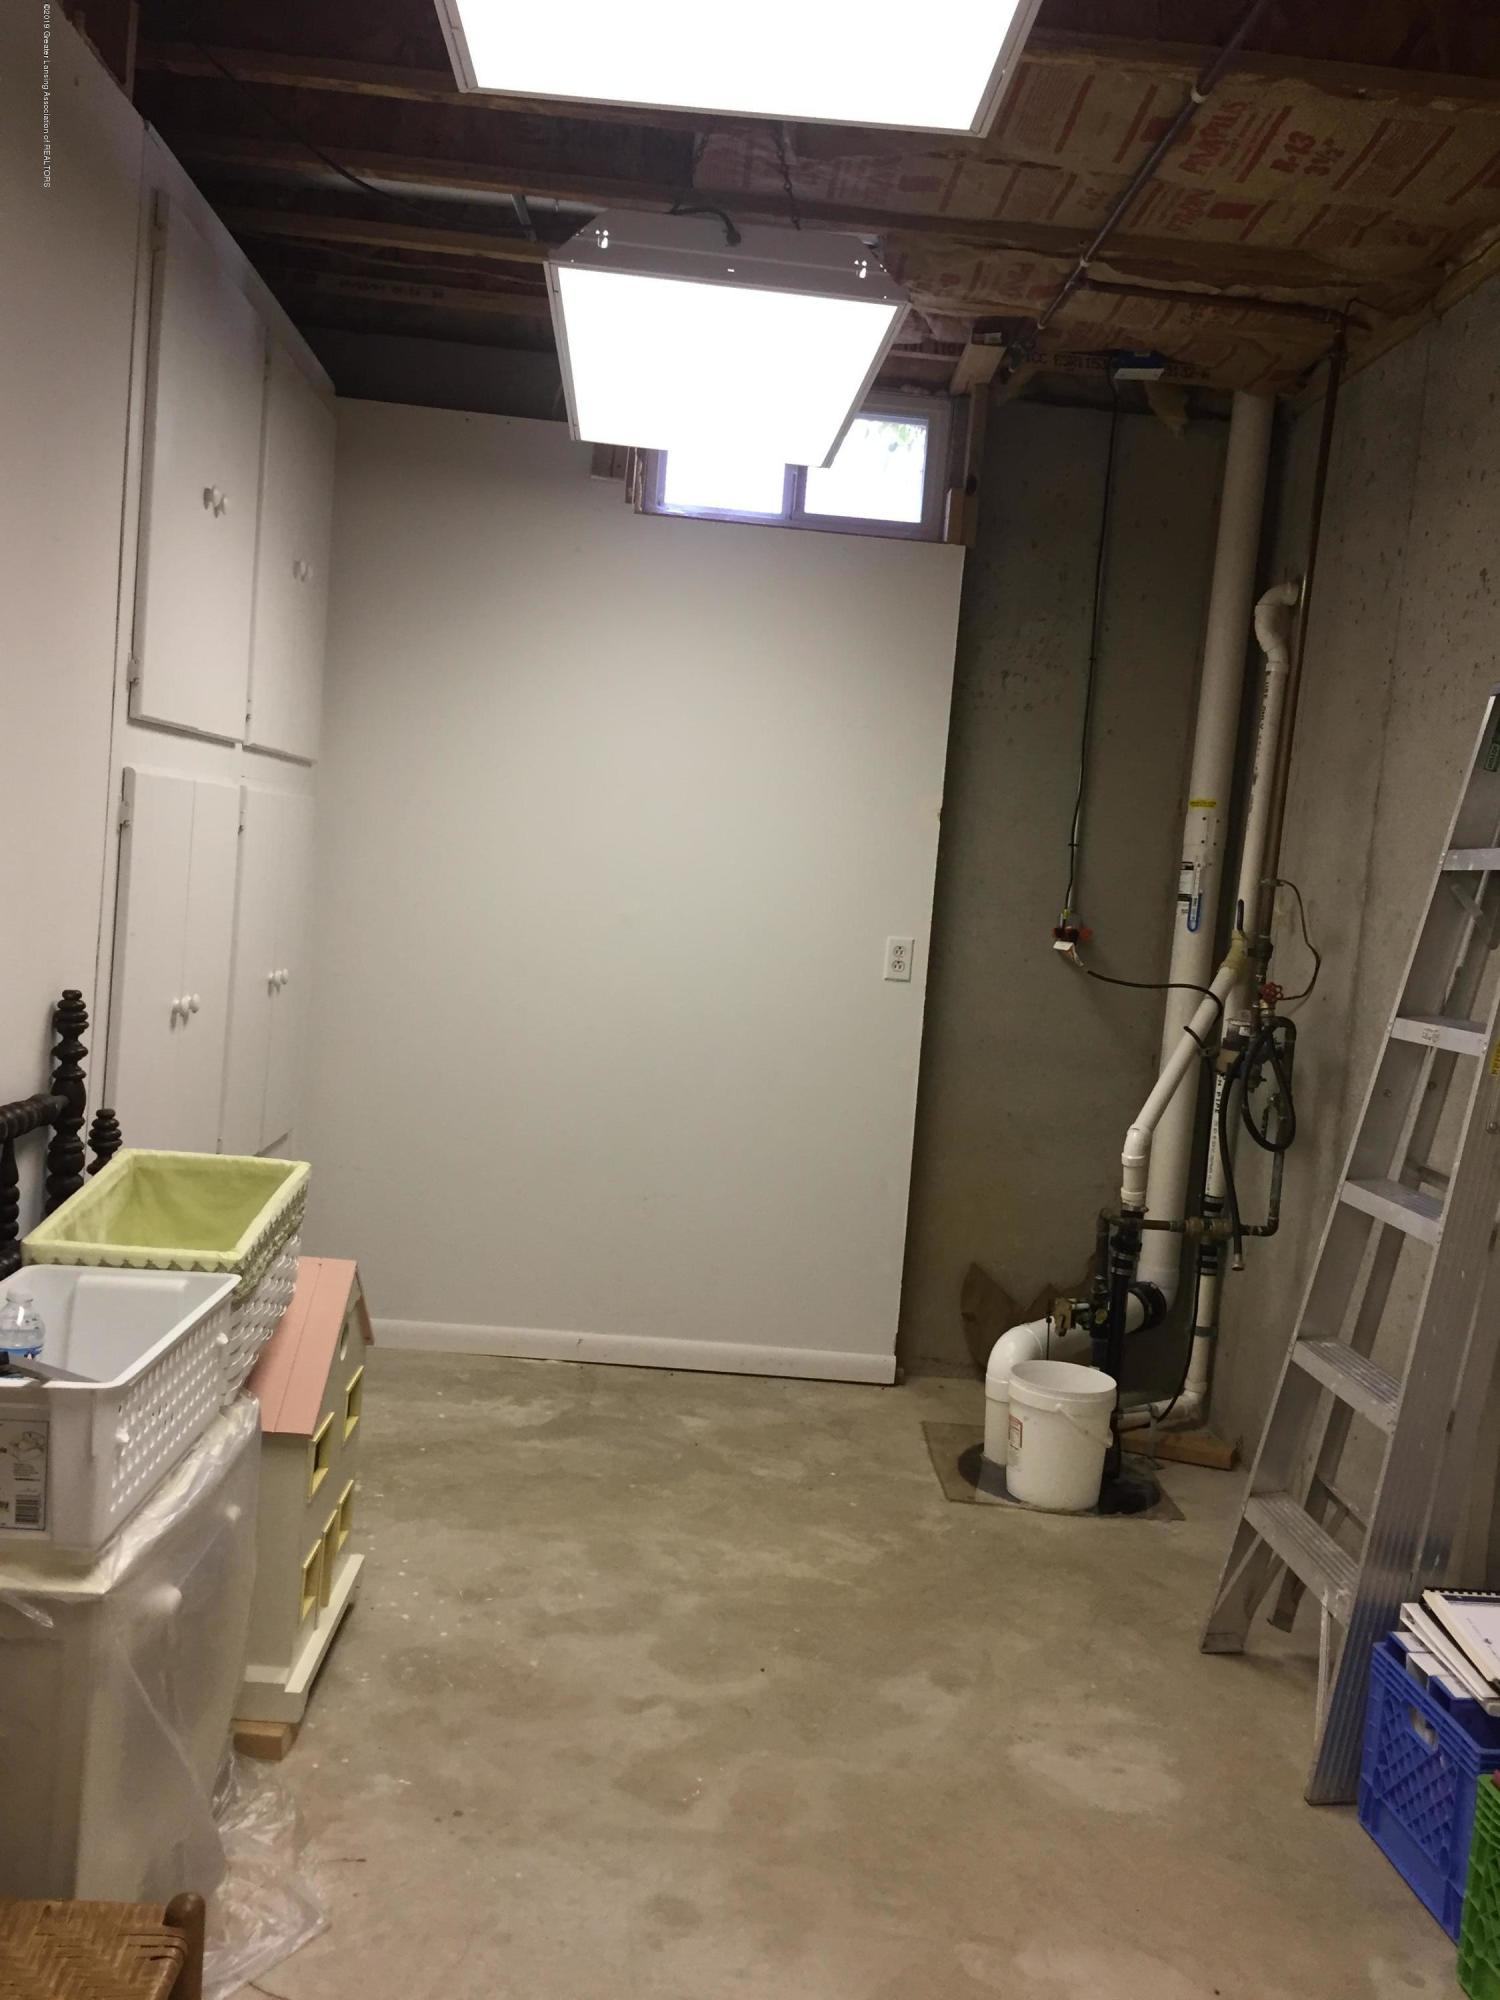 8617 Wheatdale Dr - Storage Area 1 in Basement - 54